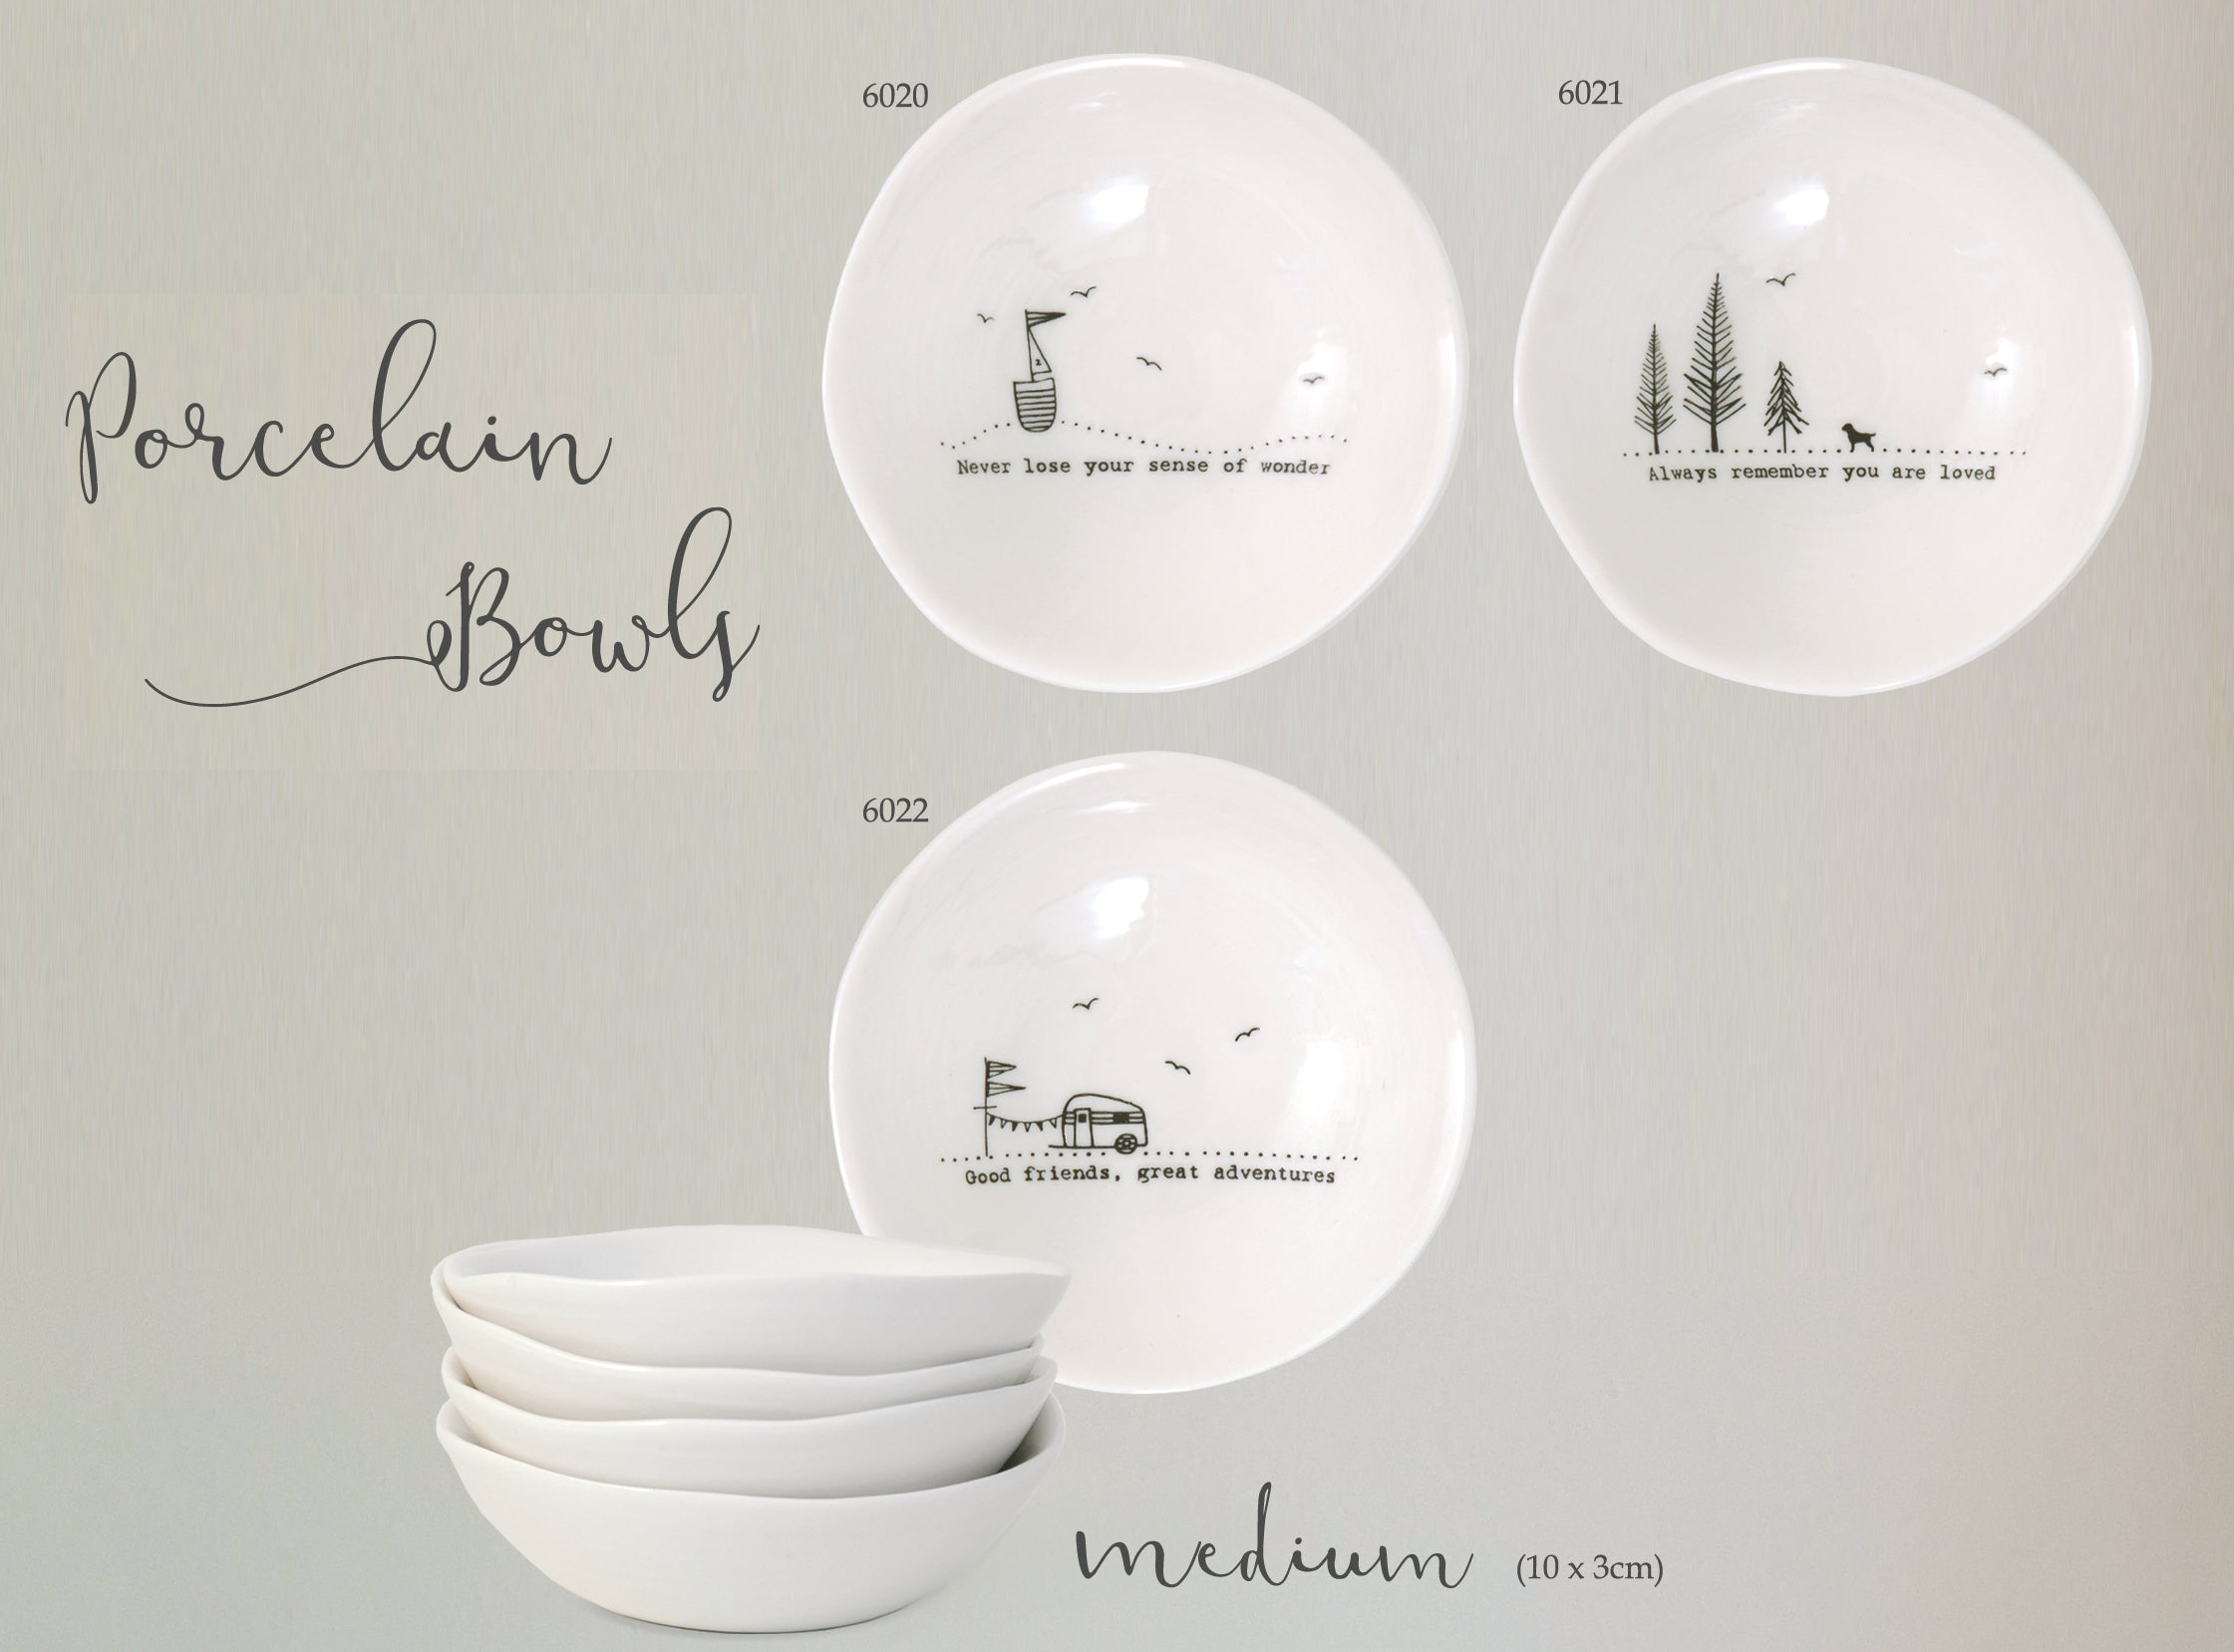 Wobbly porcelain bowls medium - Heaven in Earth